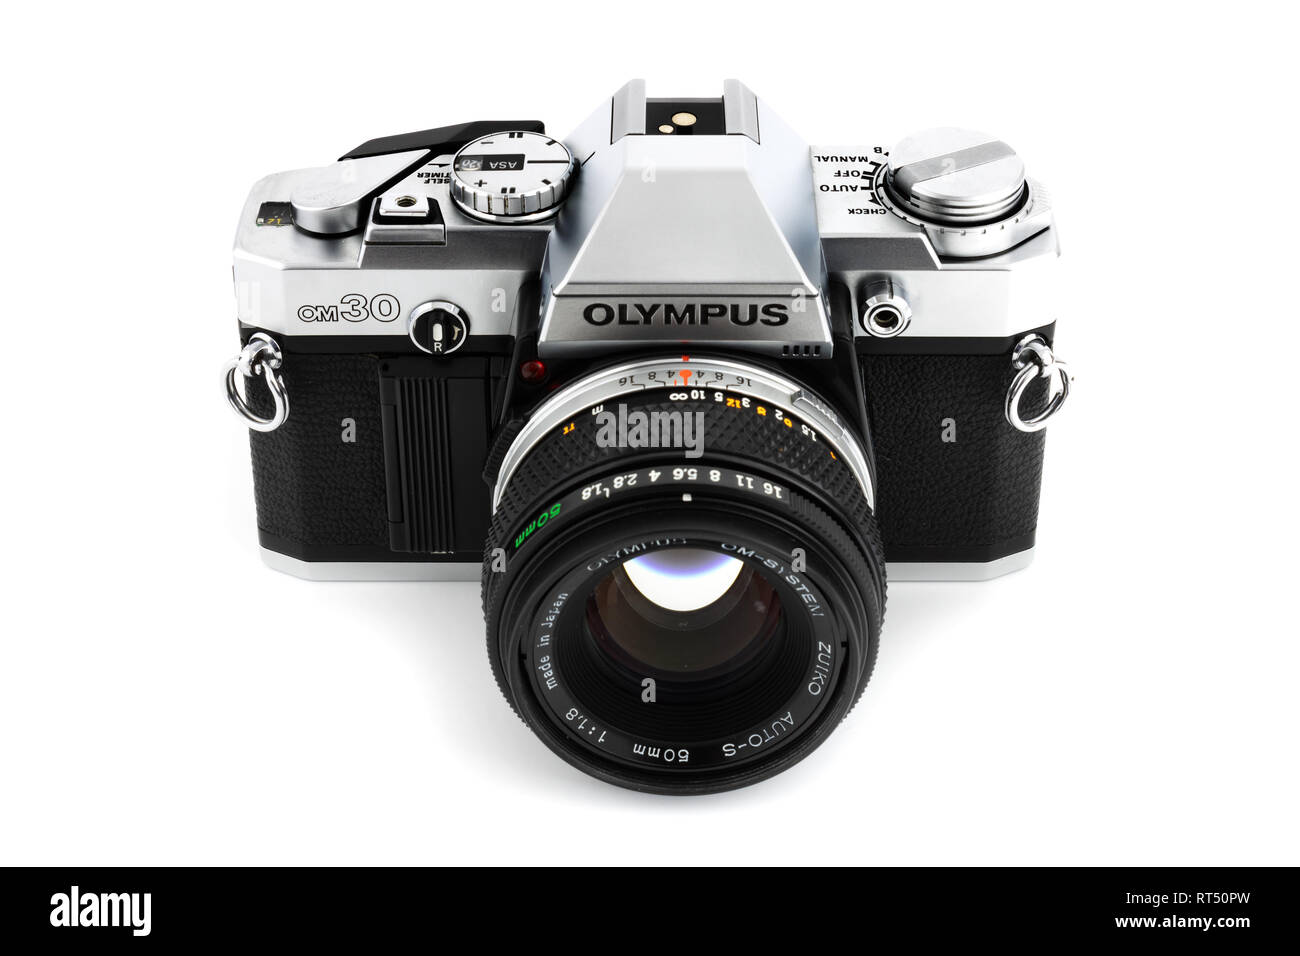 Prague, CZECH REPUBLIC - FEBRUARY 21, 2019: Olympus OM-30 a 35mm film SLR camera, launched by Olympus Corporation, laid on white background - Stock Image